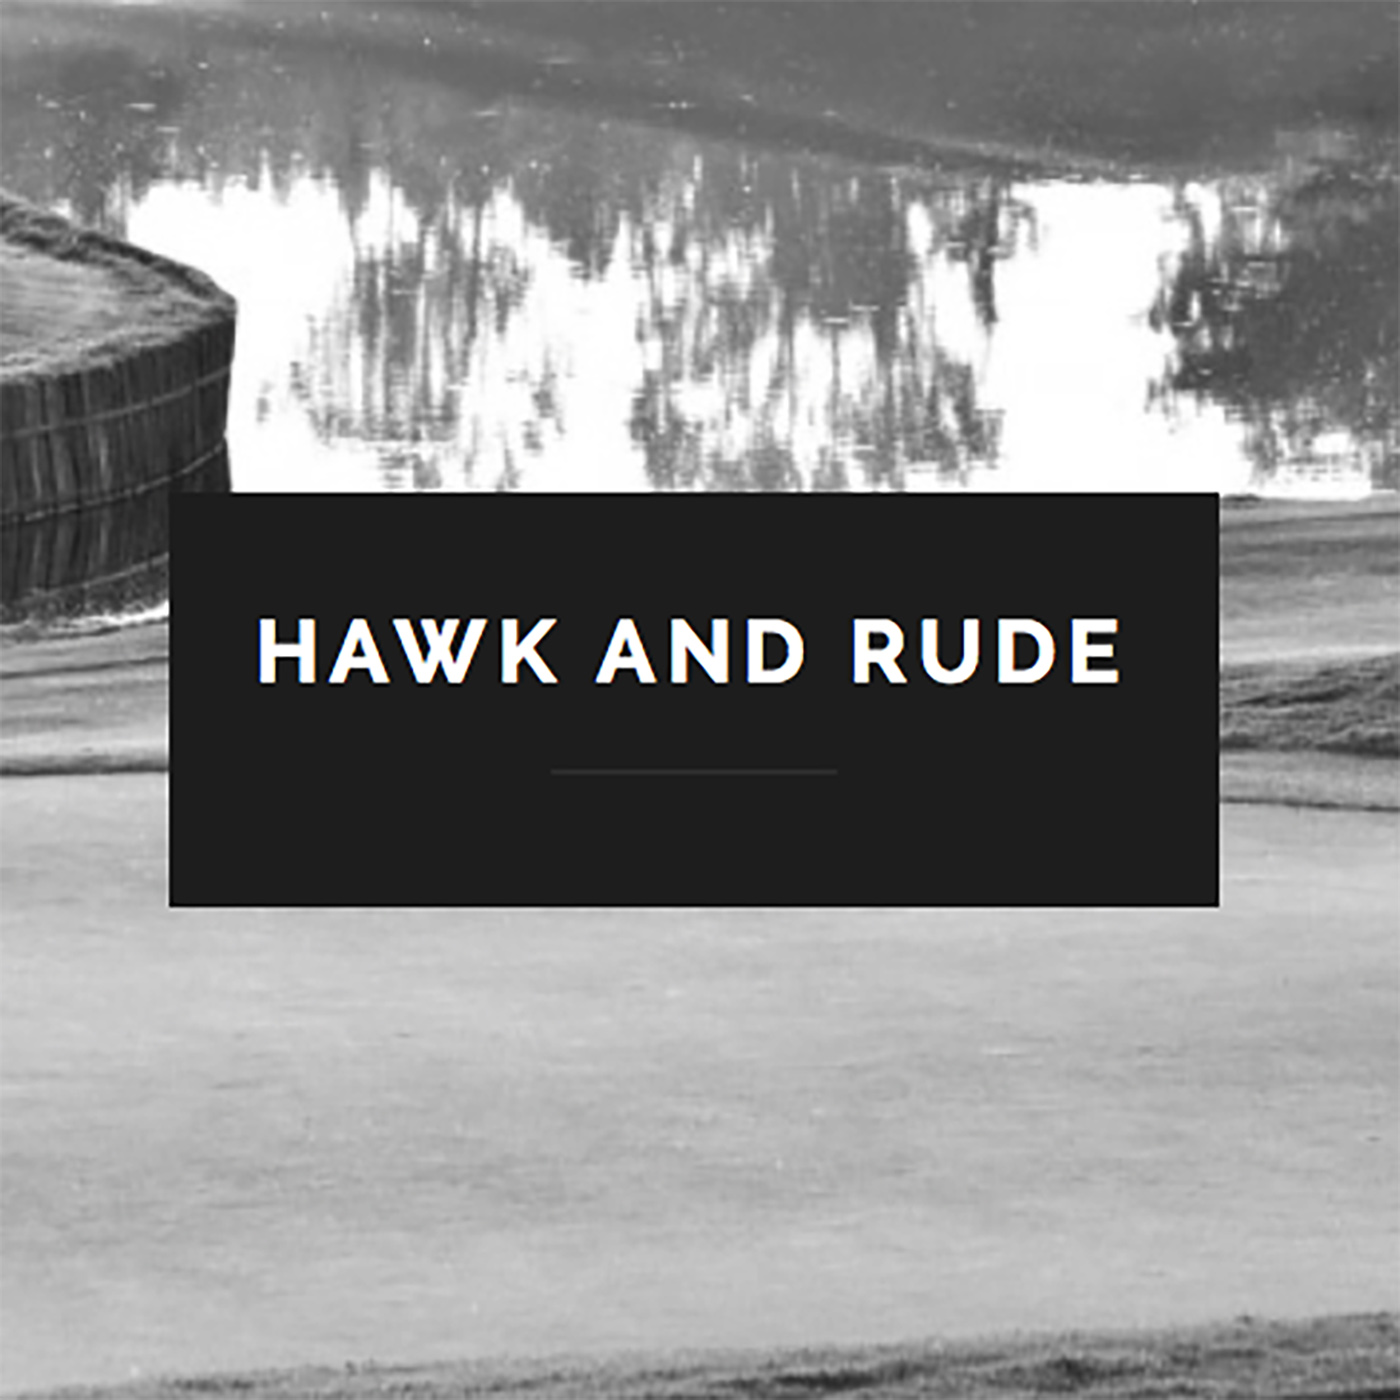 Hawk and Rude